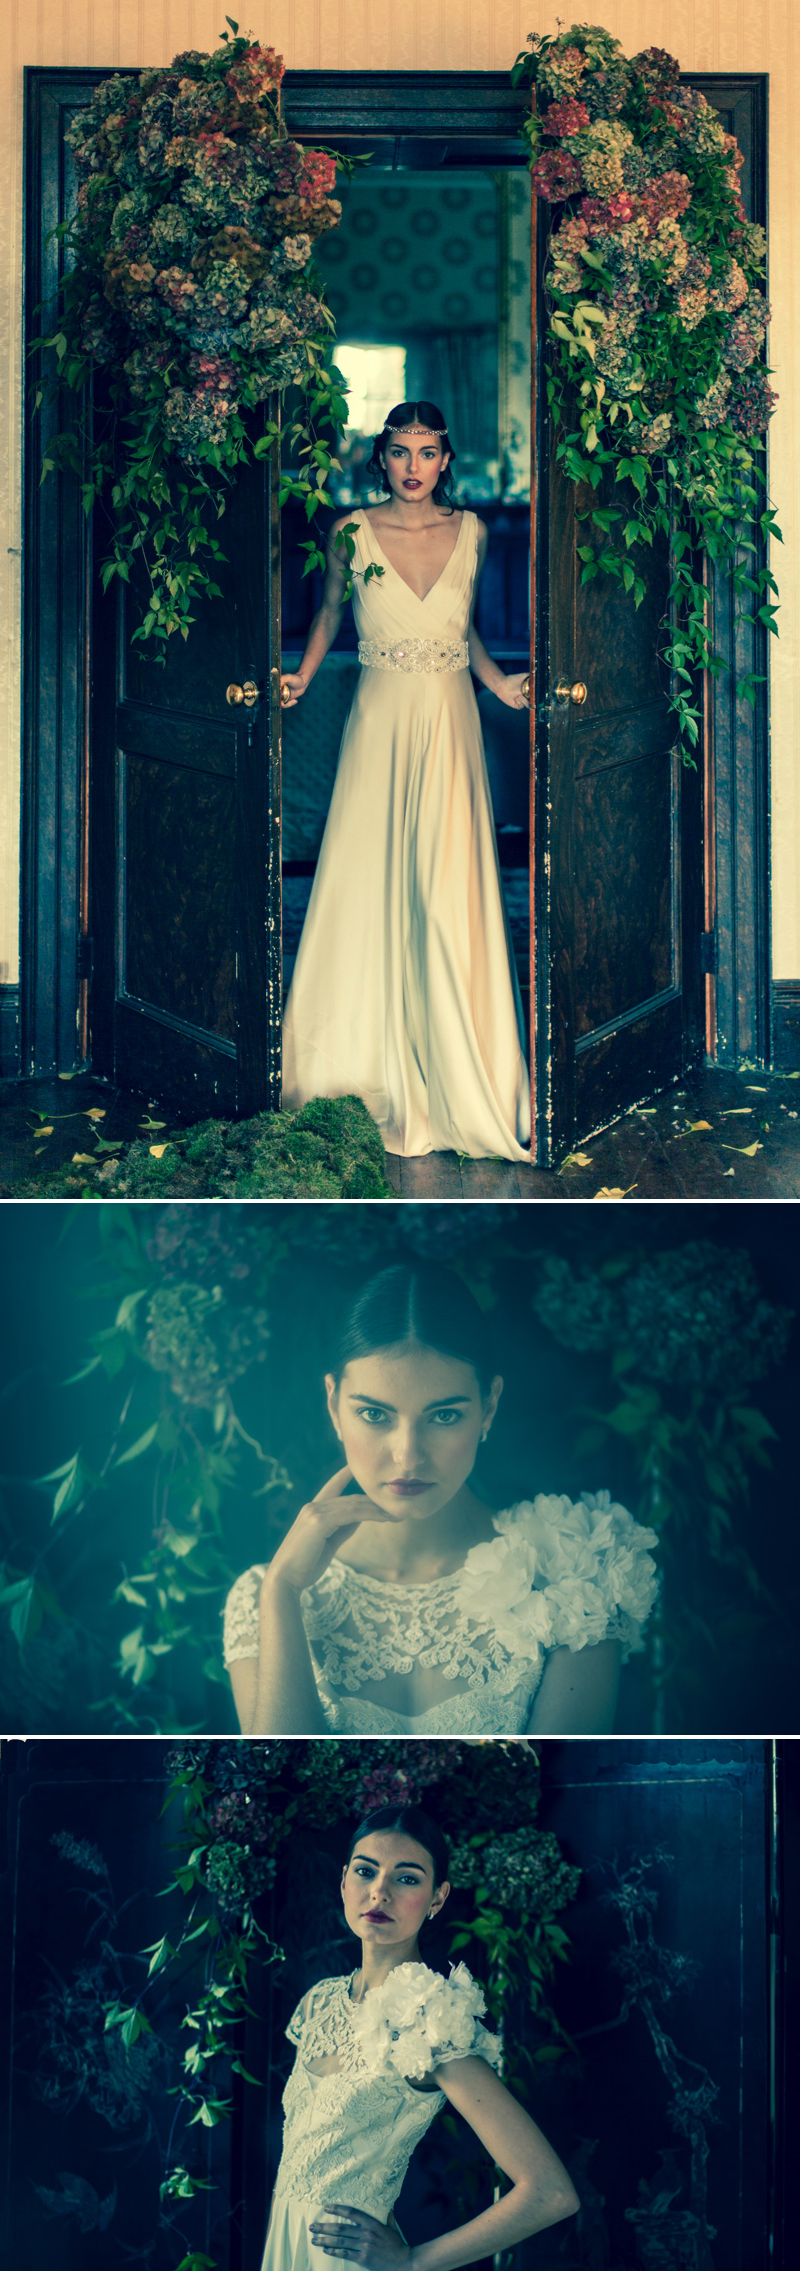 coco-wedding-venues-autumnal-shoot-at-pennard-house-temperley-bridal-dresses-photography-by-emma-lewis-layer-1